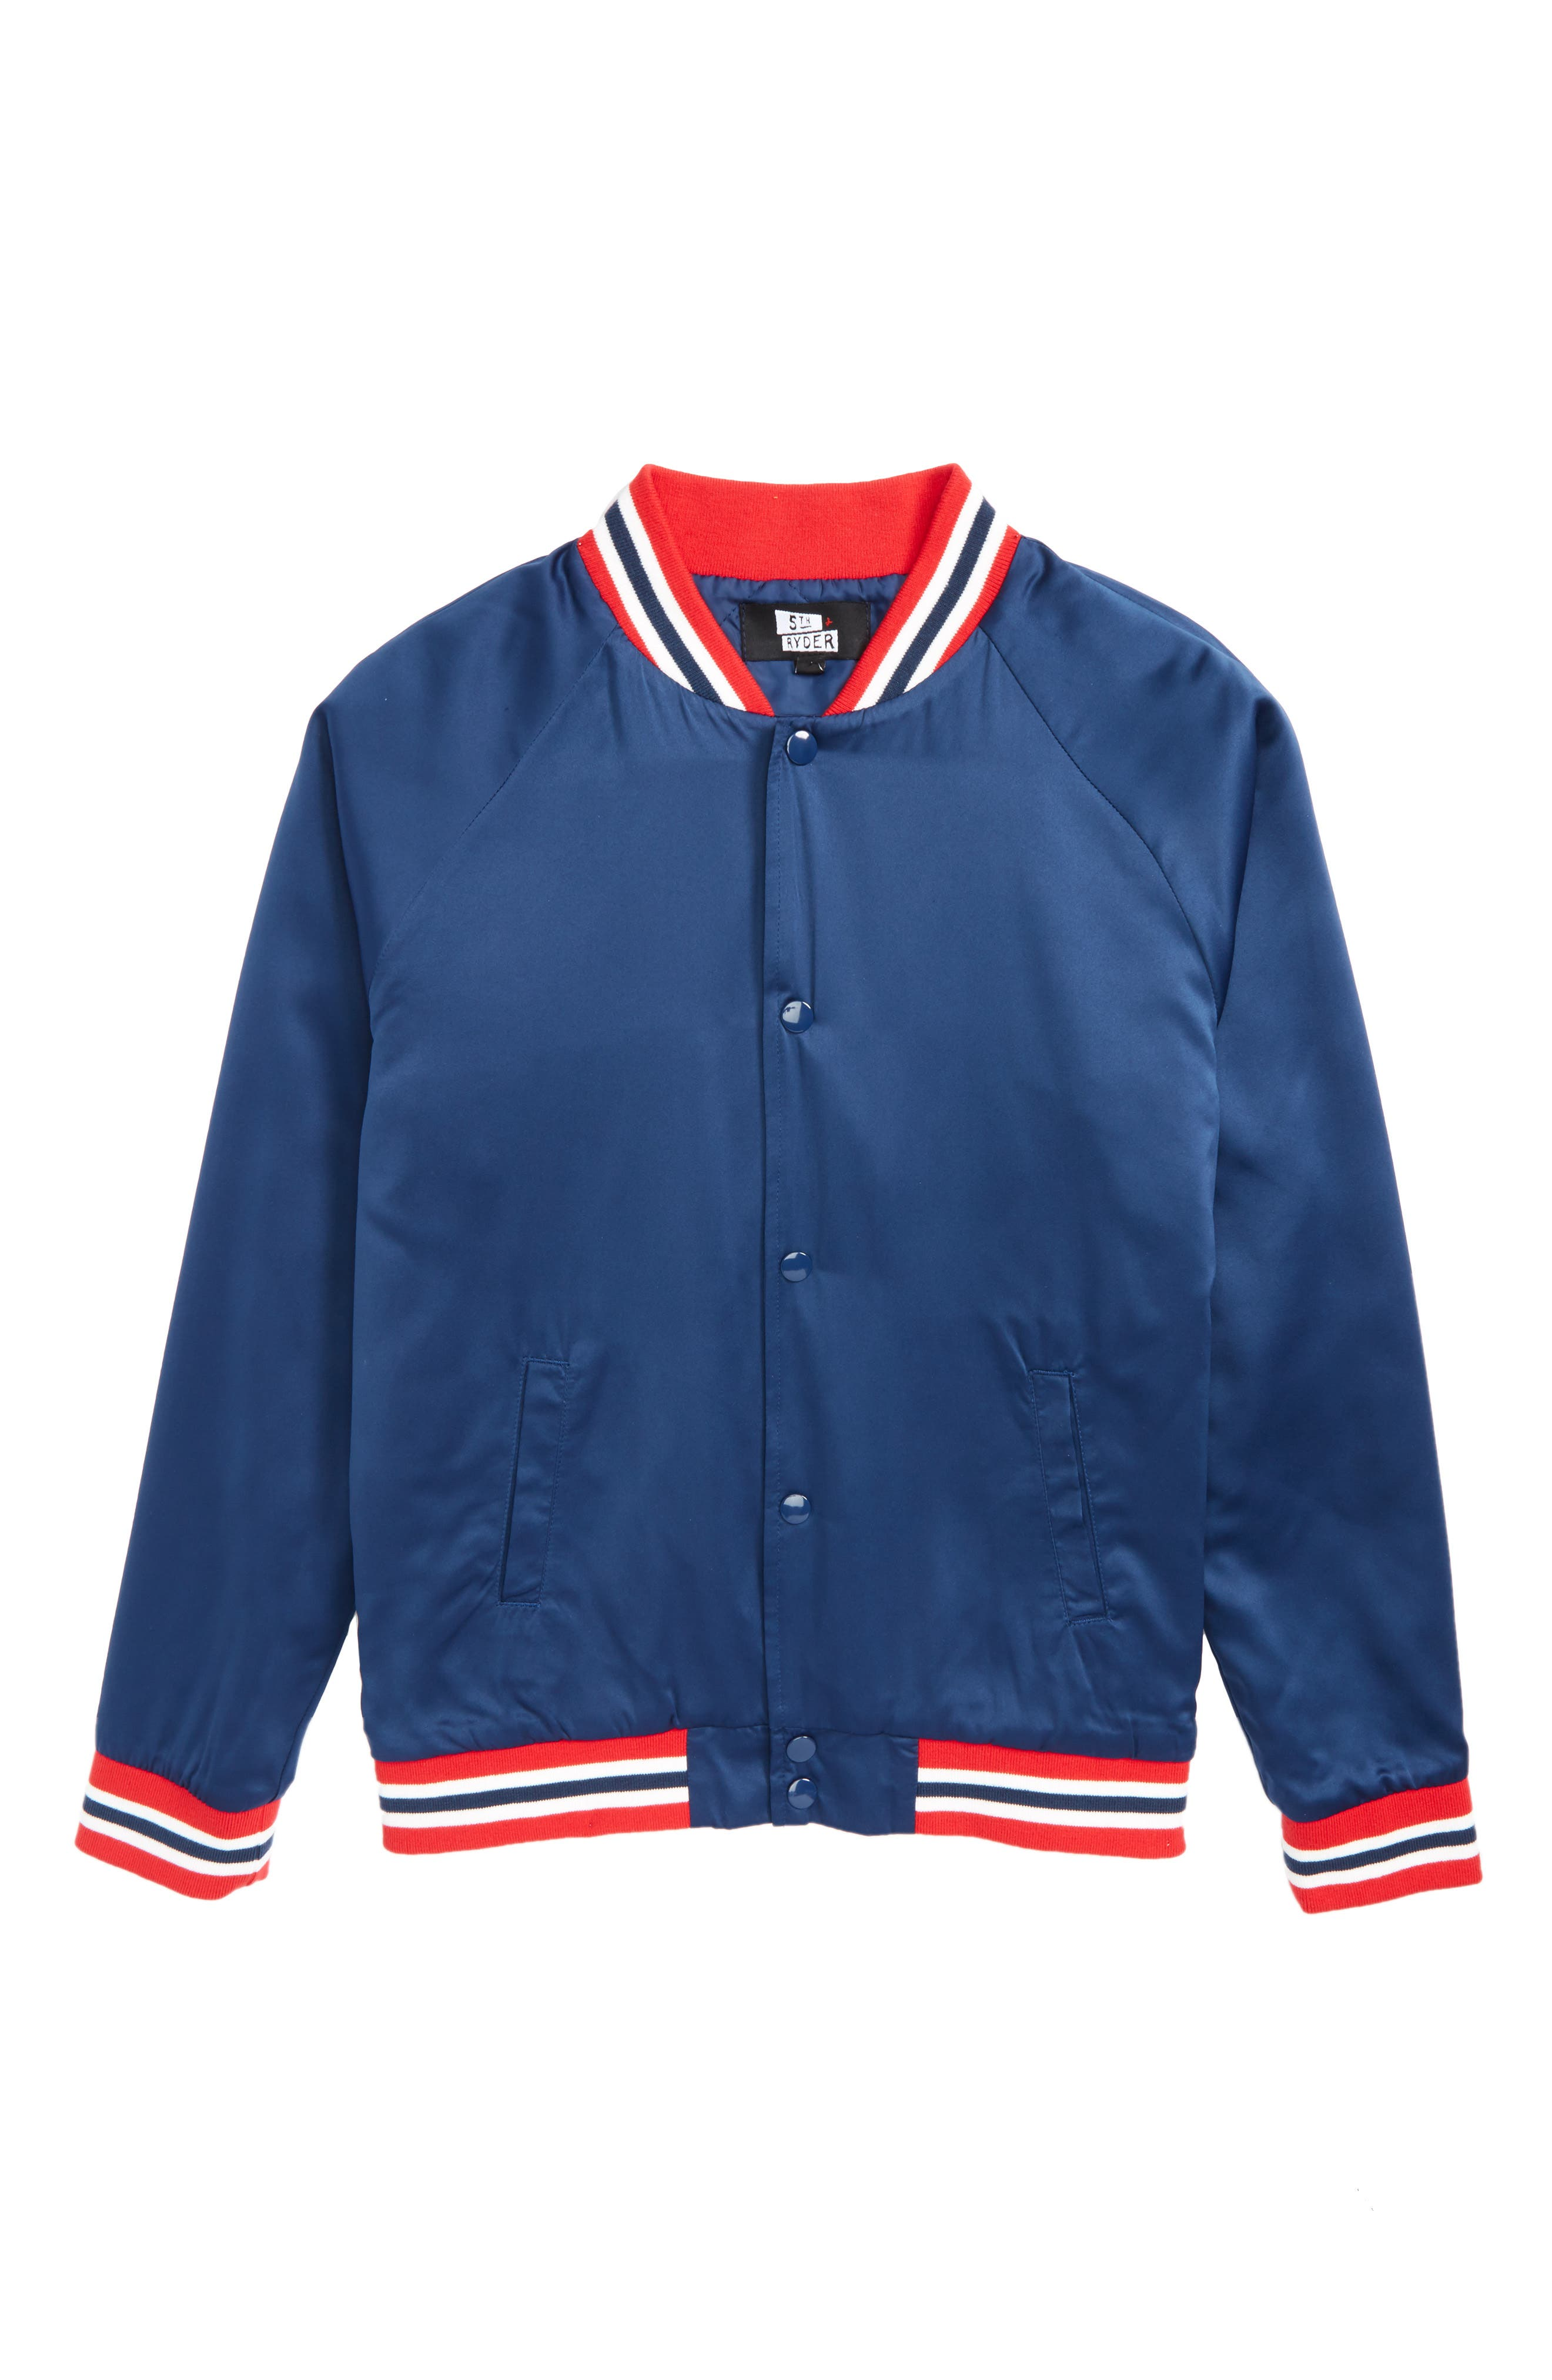 5th and Ryder Water Resistant Varsity Jacket (Big Boys)